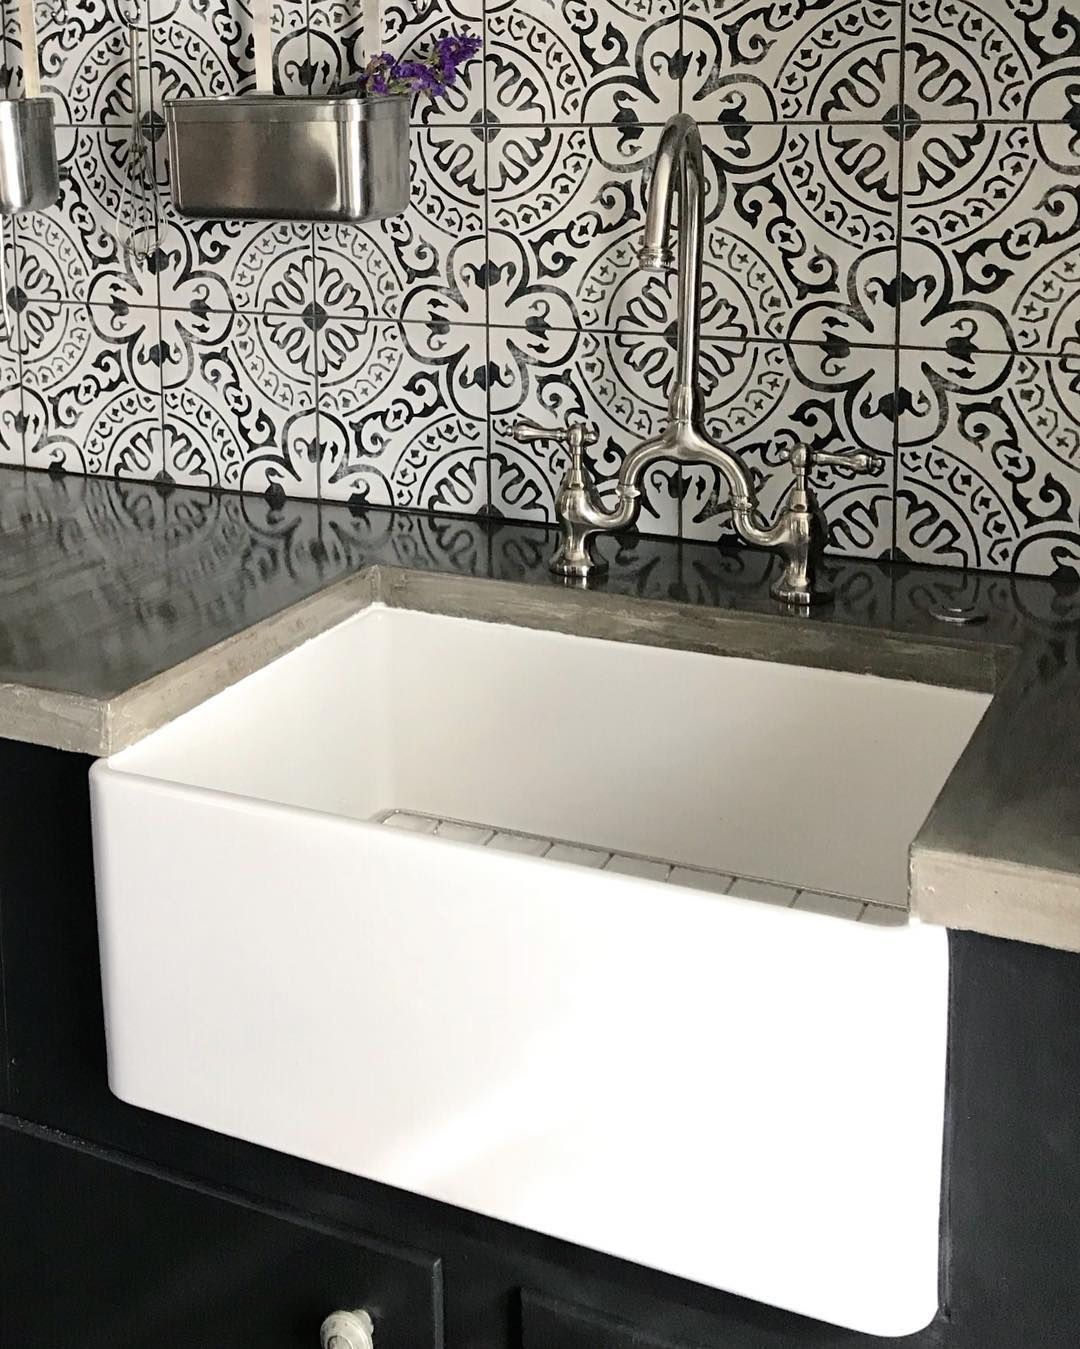 24 Inch Single Bowl Farmhouse Sink With Chrome Drain And Grid Bowl Chrome Drain Farmhouse Farm In 2020 Farmhouse Sink Black And White Tiles Concrete Countertops